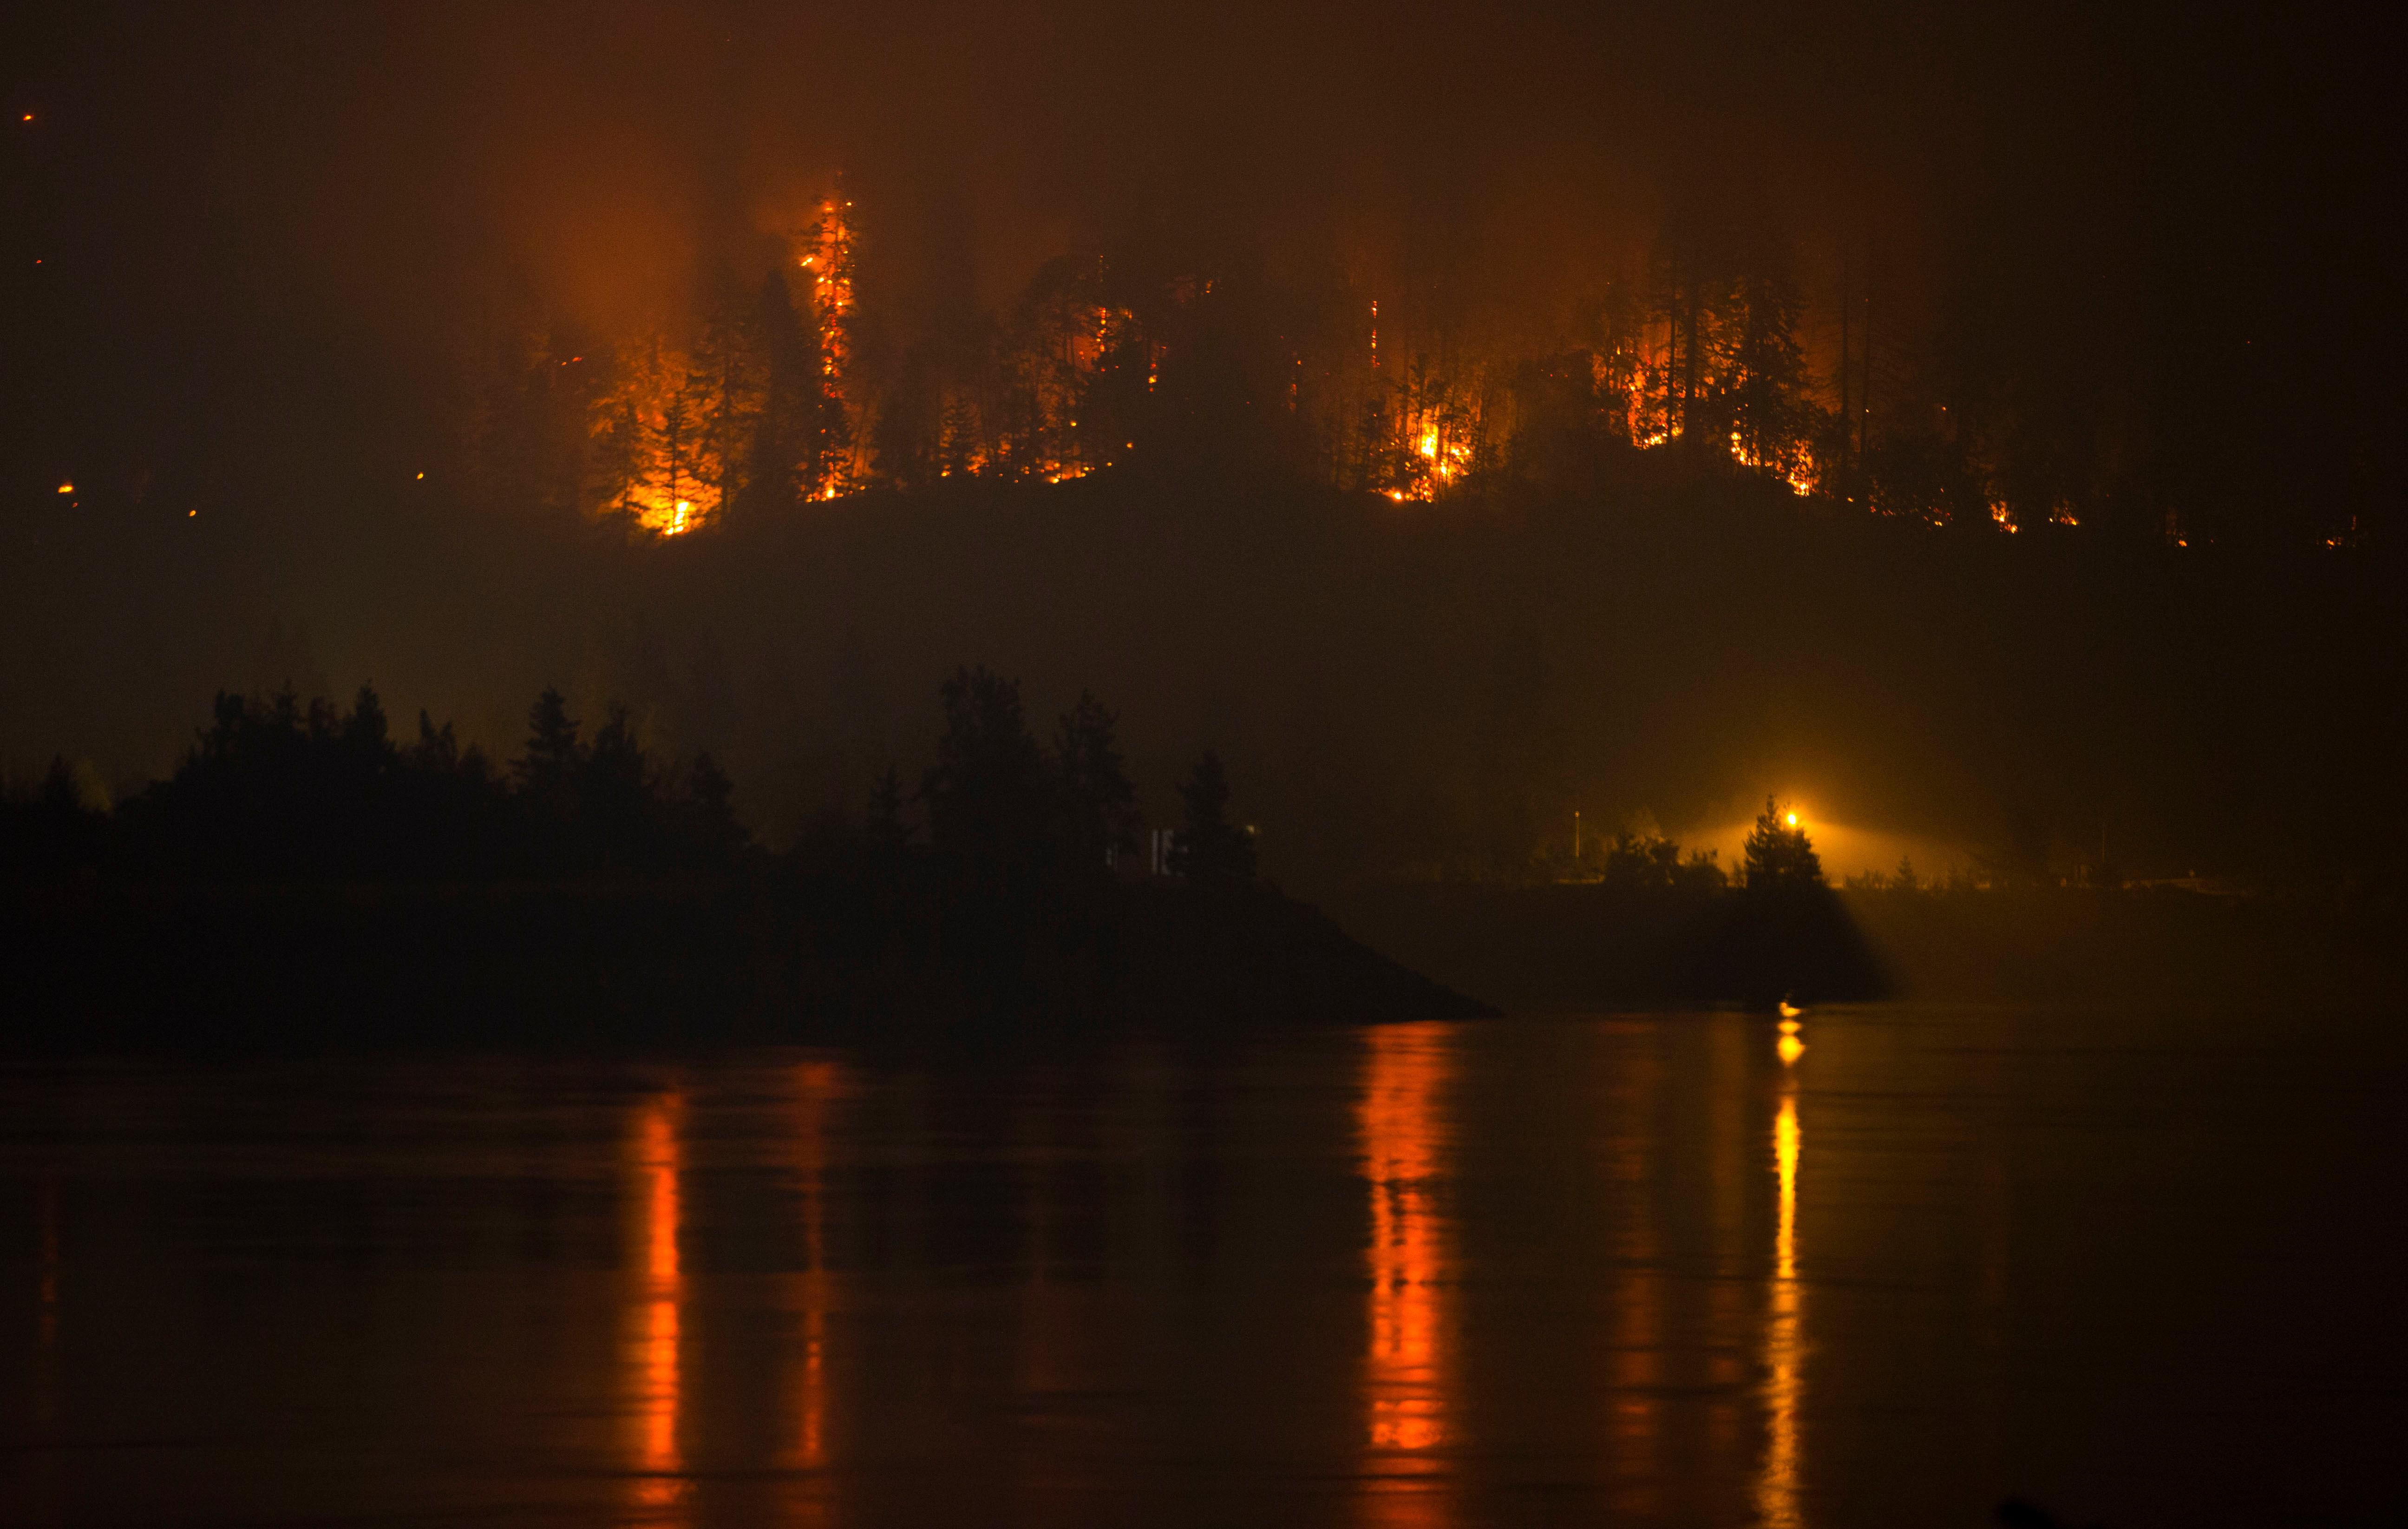 Flames are visible from the Washington side of the Columbia River above the Bonneville Dam in North Bonneville, Wash., as a wildfire moves west. The section of the Columbia River was closed after the Captain of the Port deemed it unsafe for vessels to travel the river from Reed Island to the Bonneville Dam. (Chris Pietsch/The Register-Guard via AP)